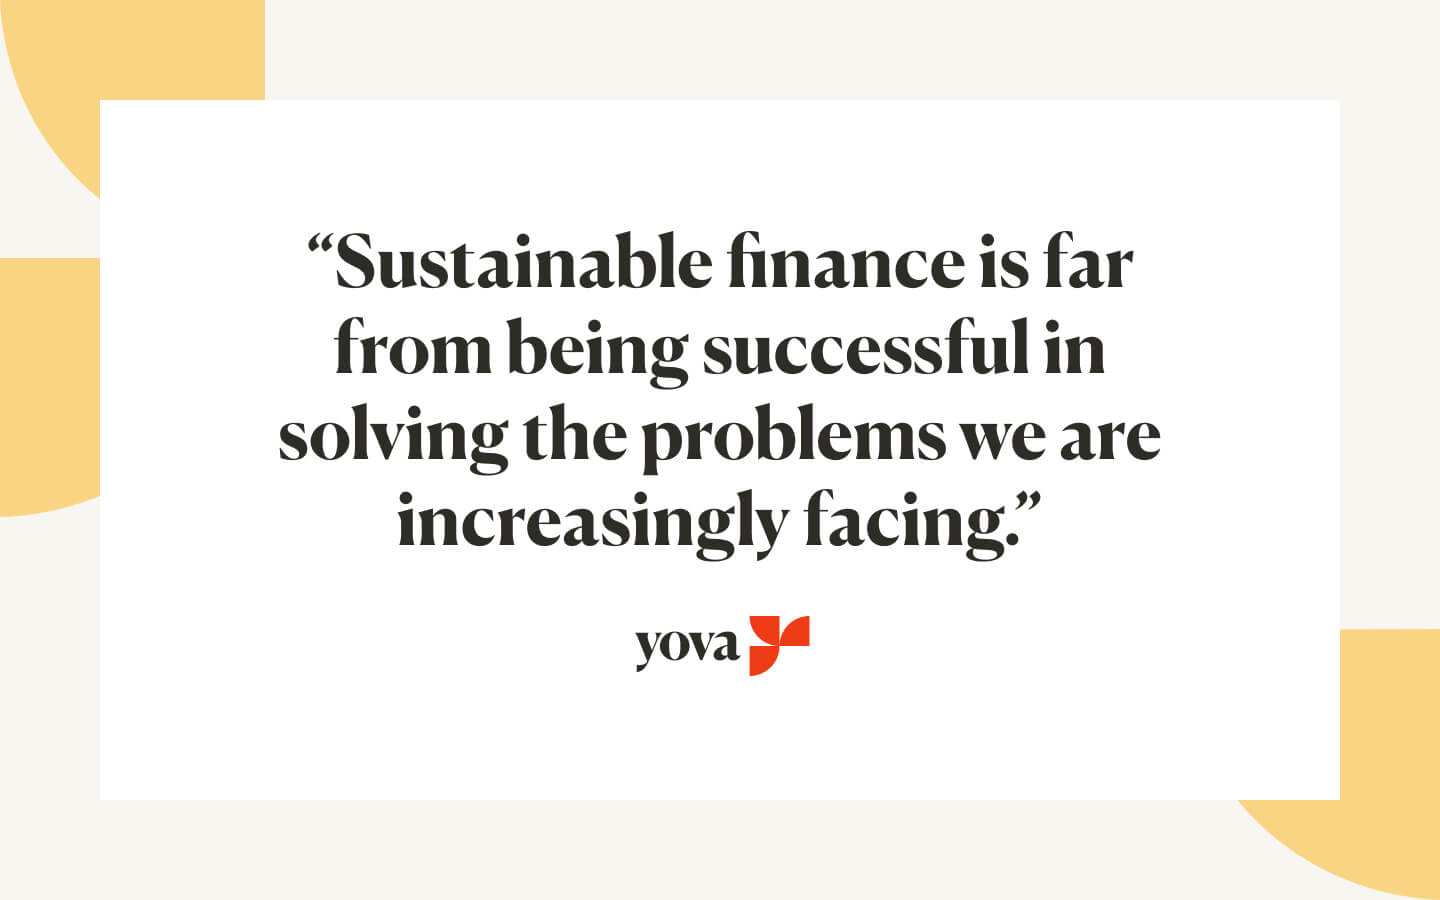 Sustainable finance has still a long way to go